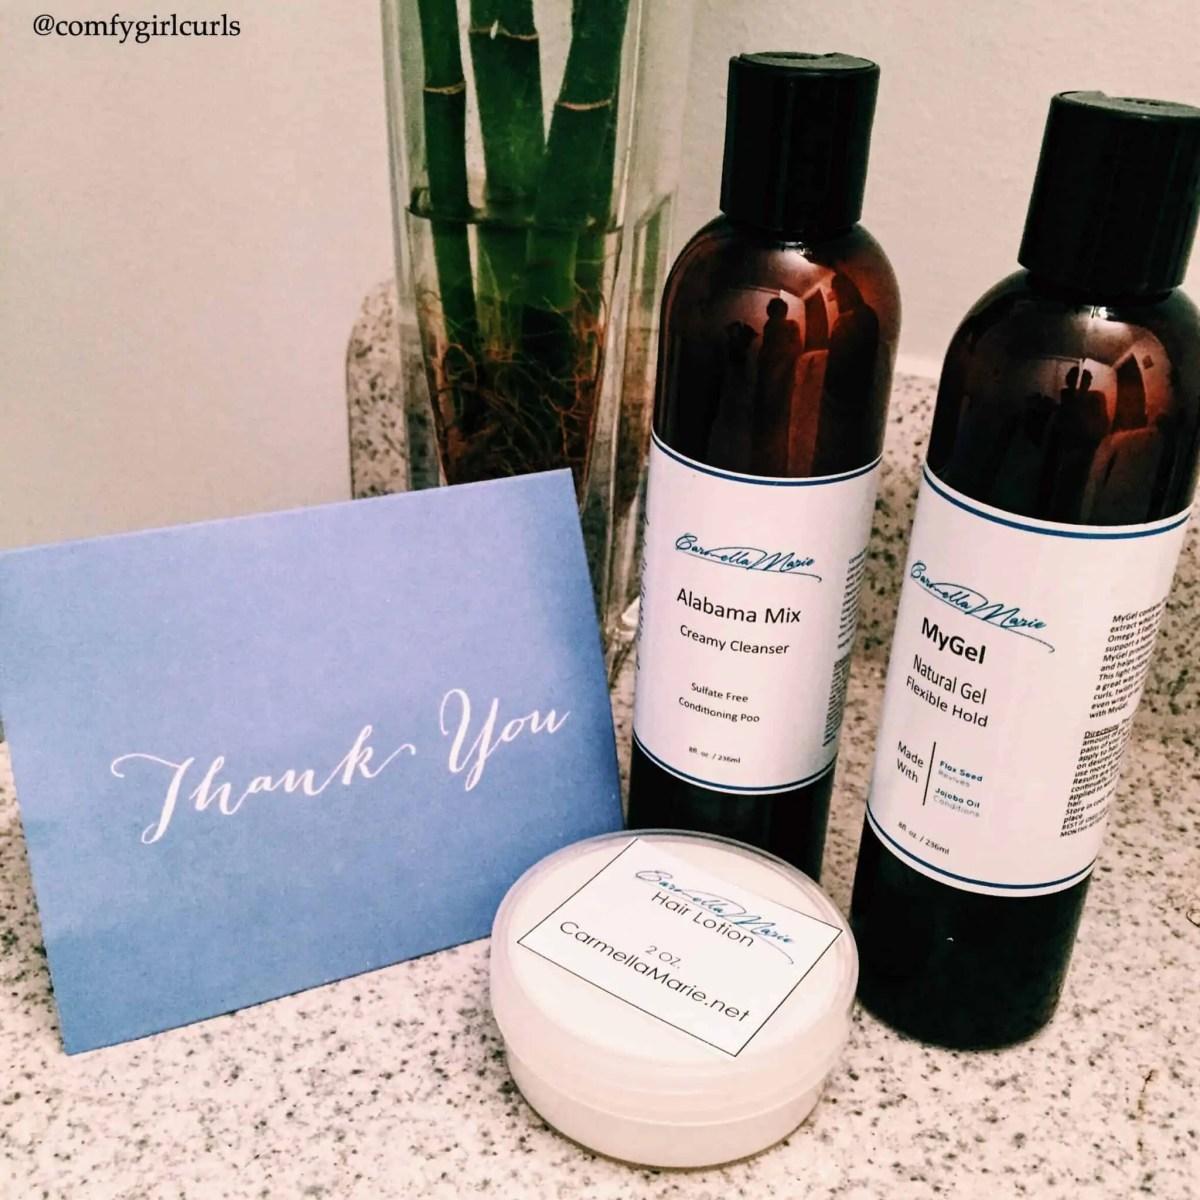 Carmella Marie - Product Review